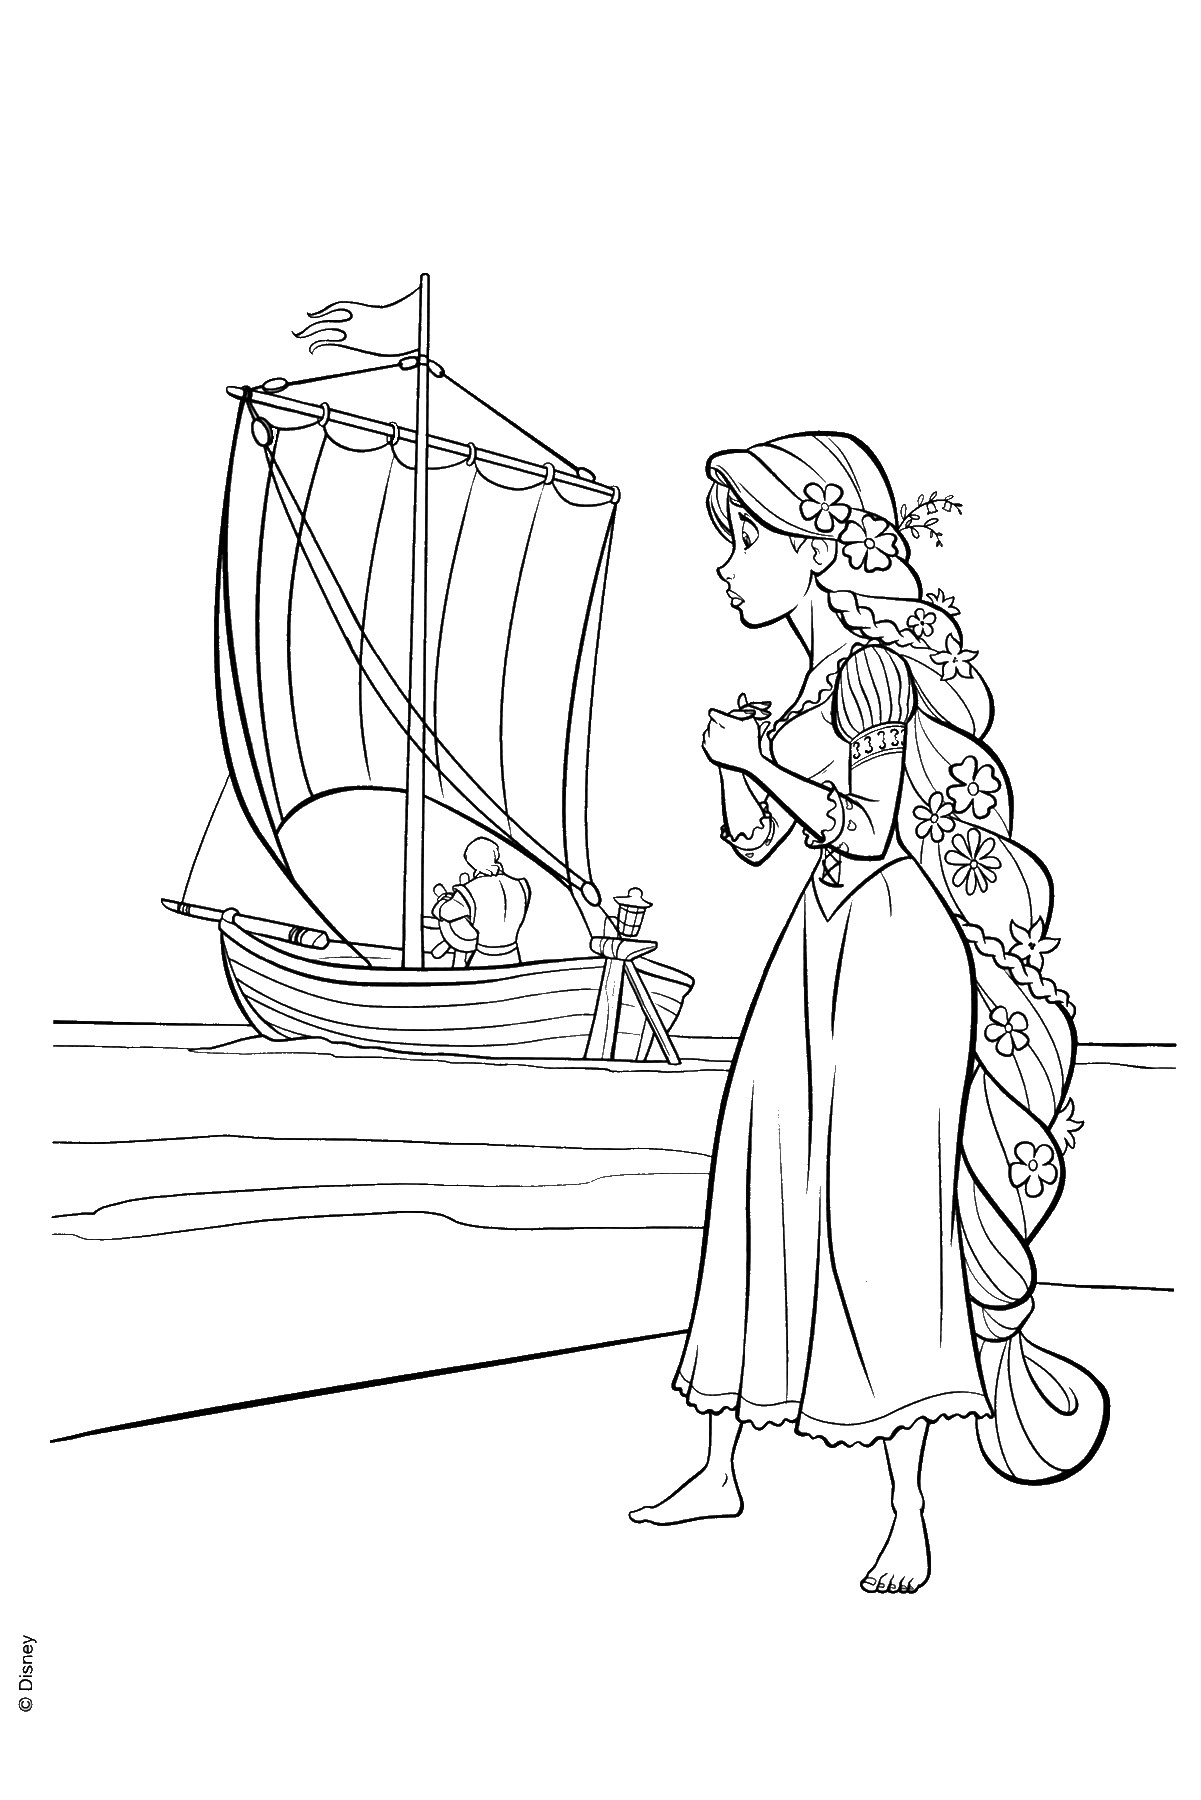 tangled the series coloring pages tangled the series coloring pages printable tangled the series coloring pages